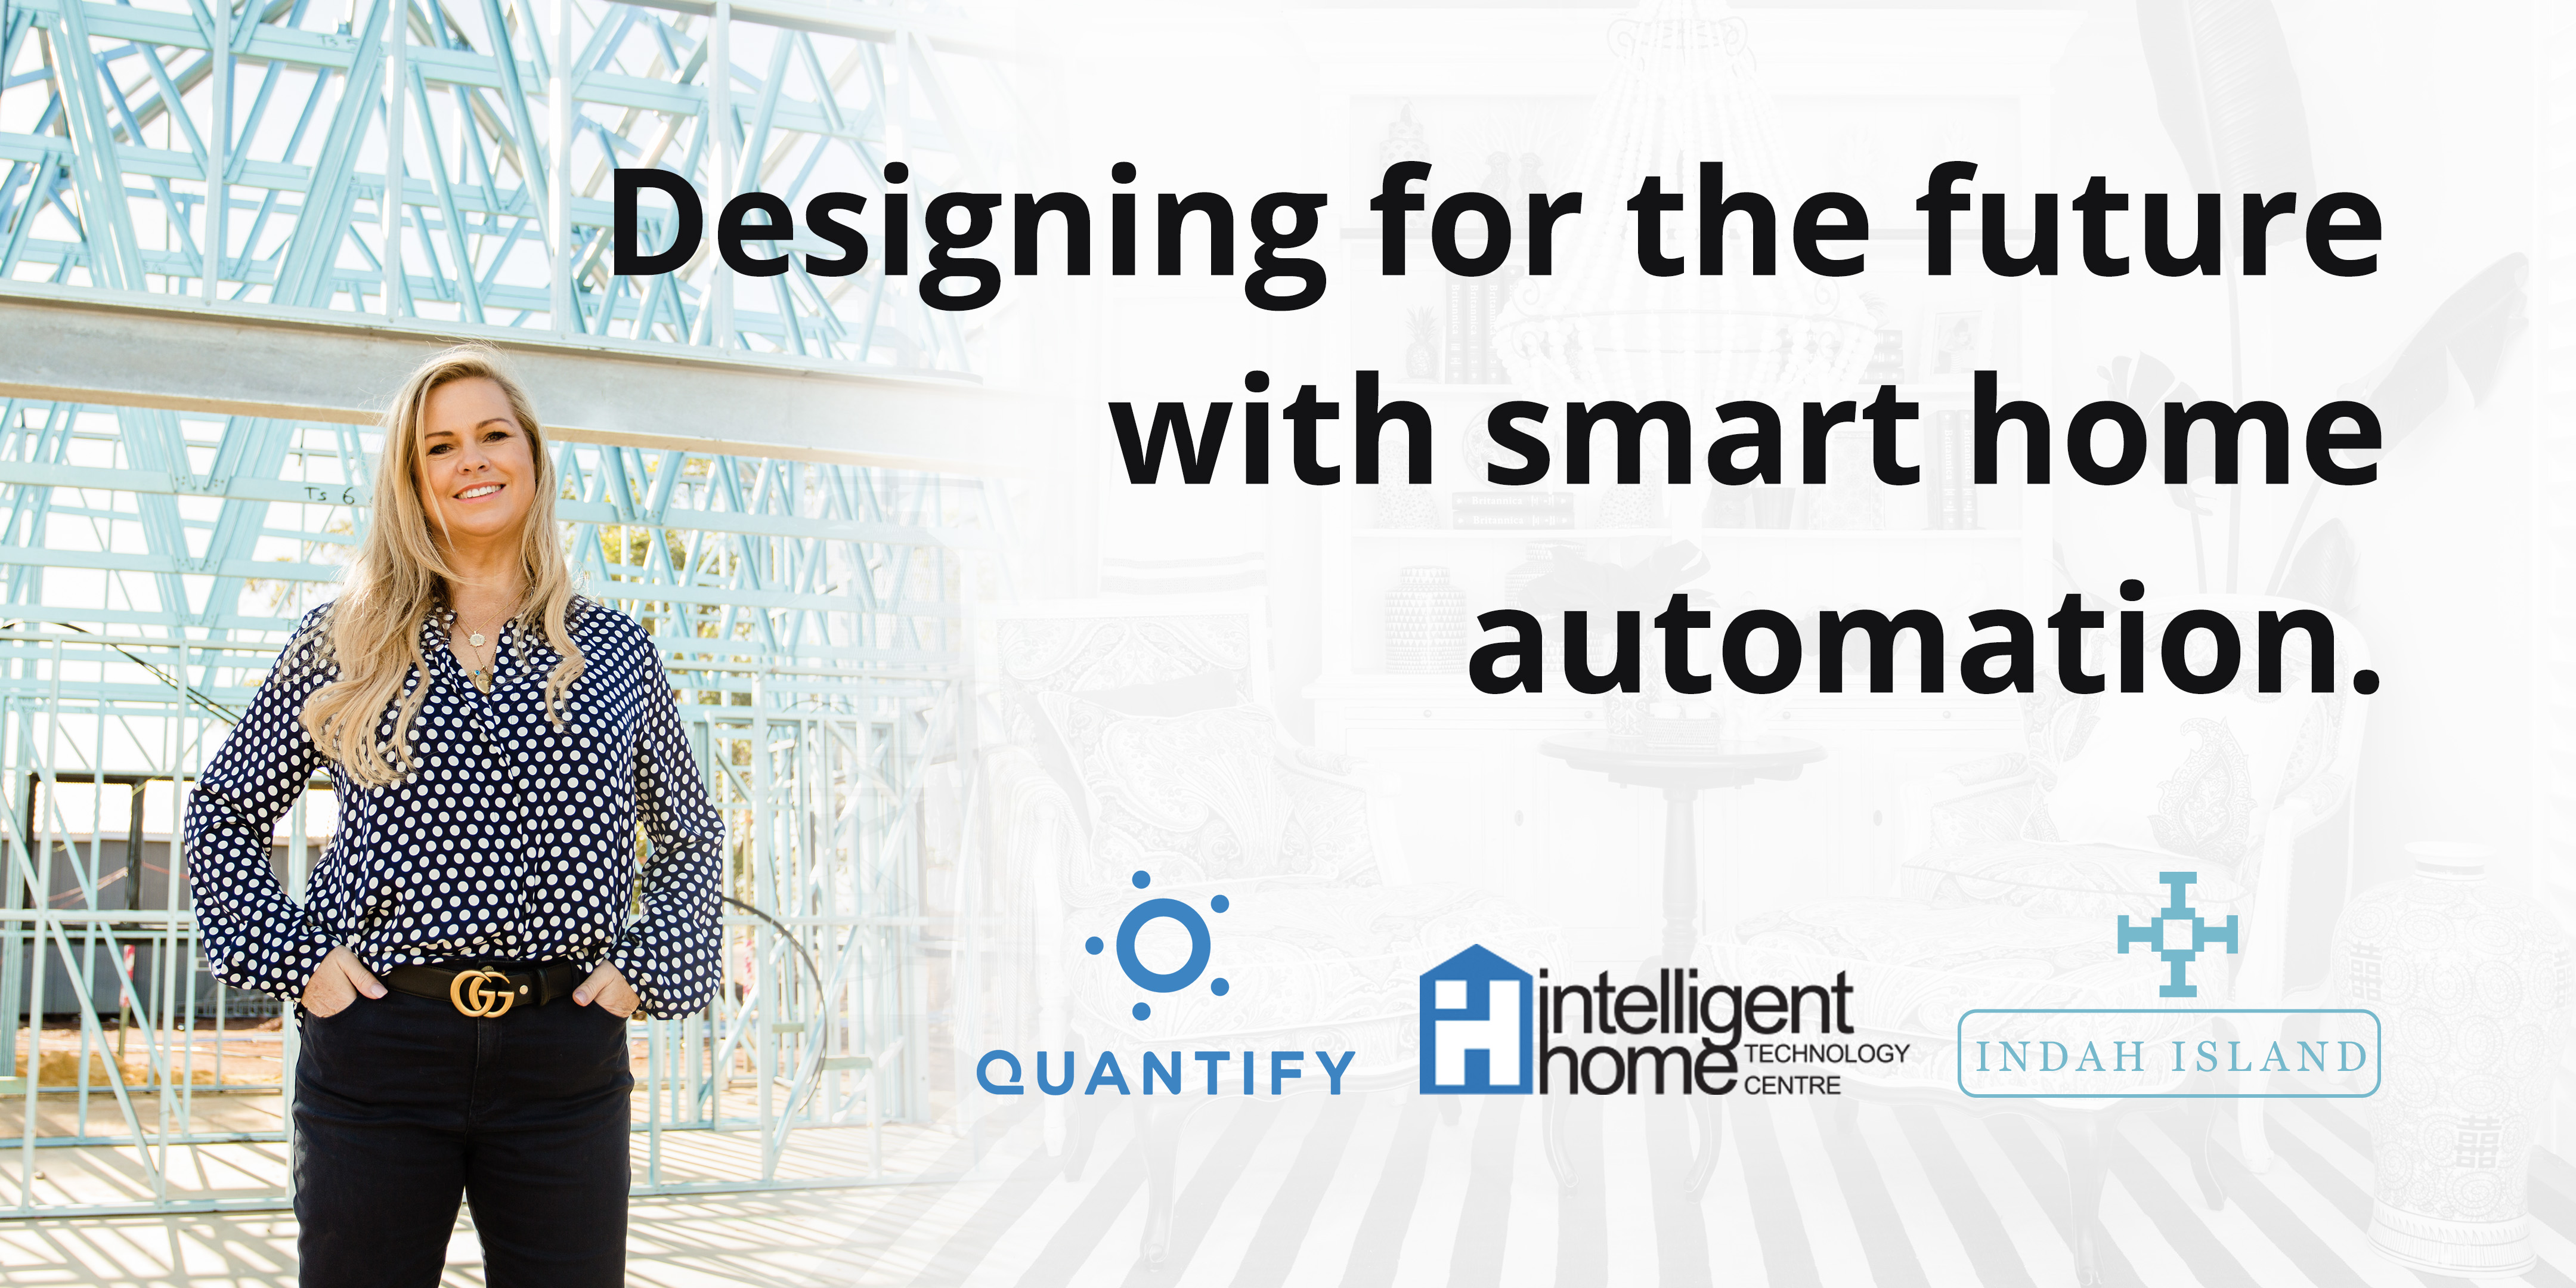 Designing for the future with smart home automation